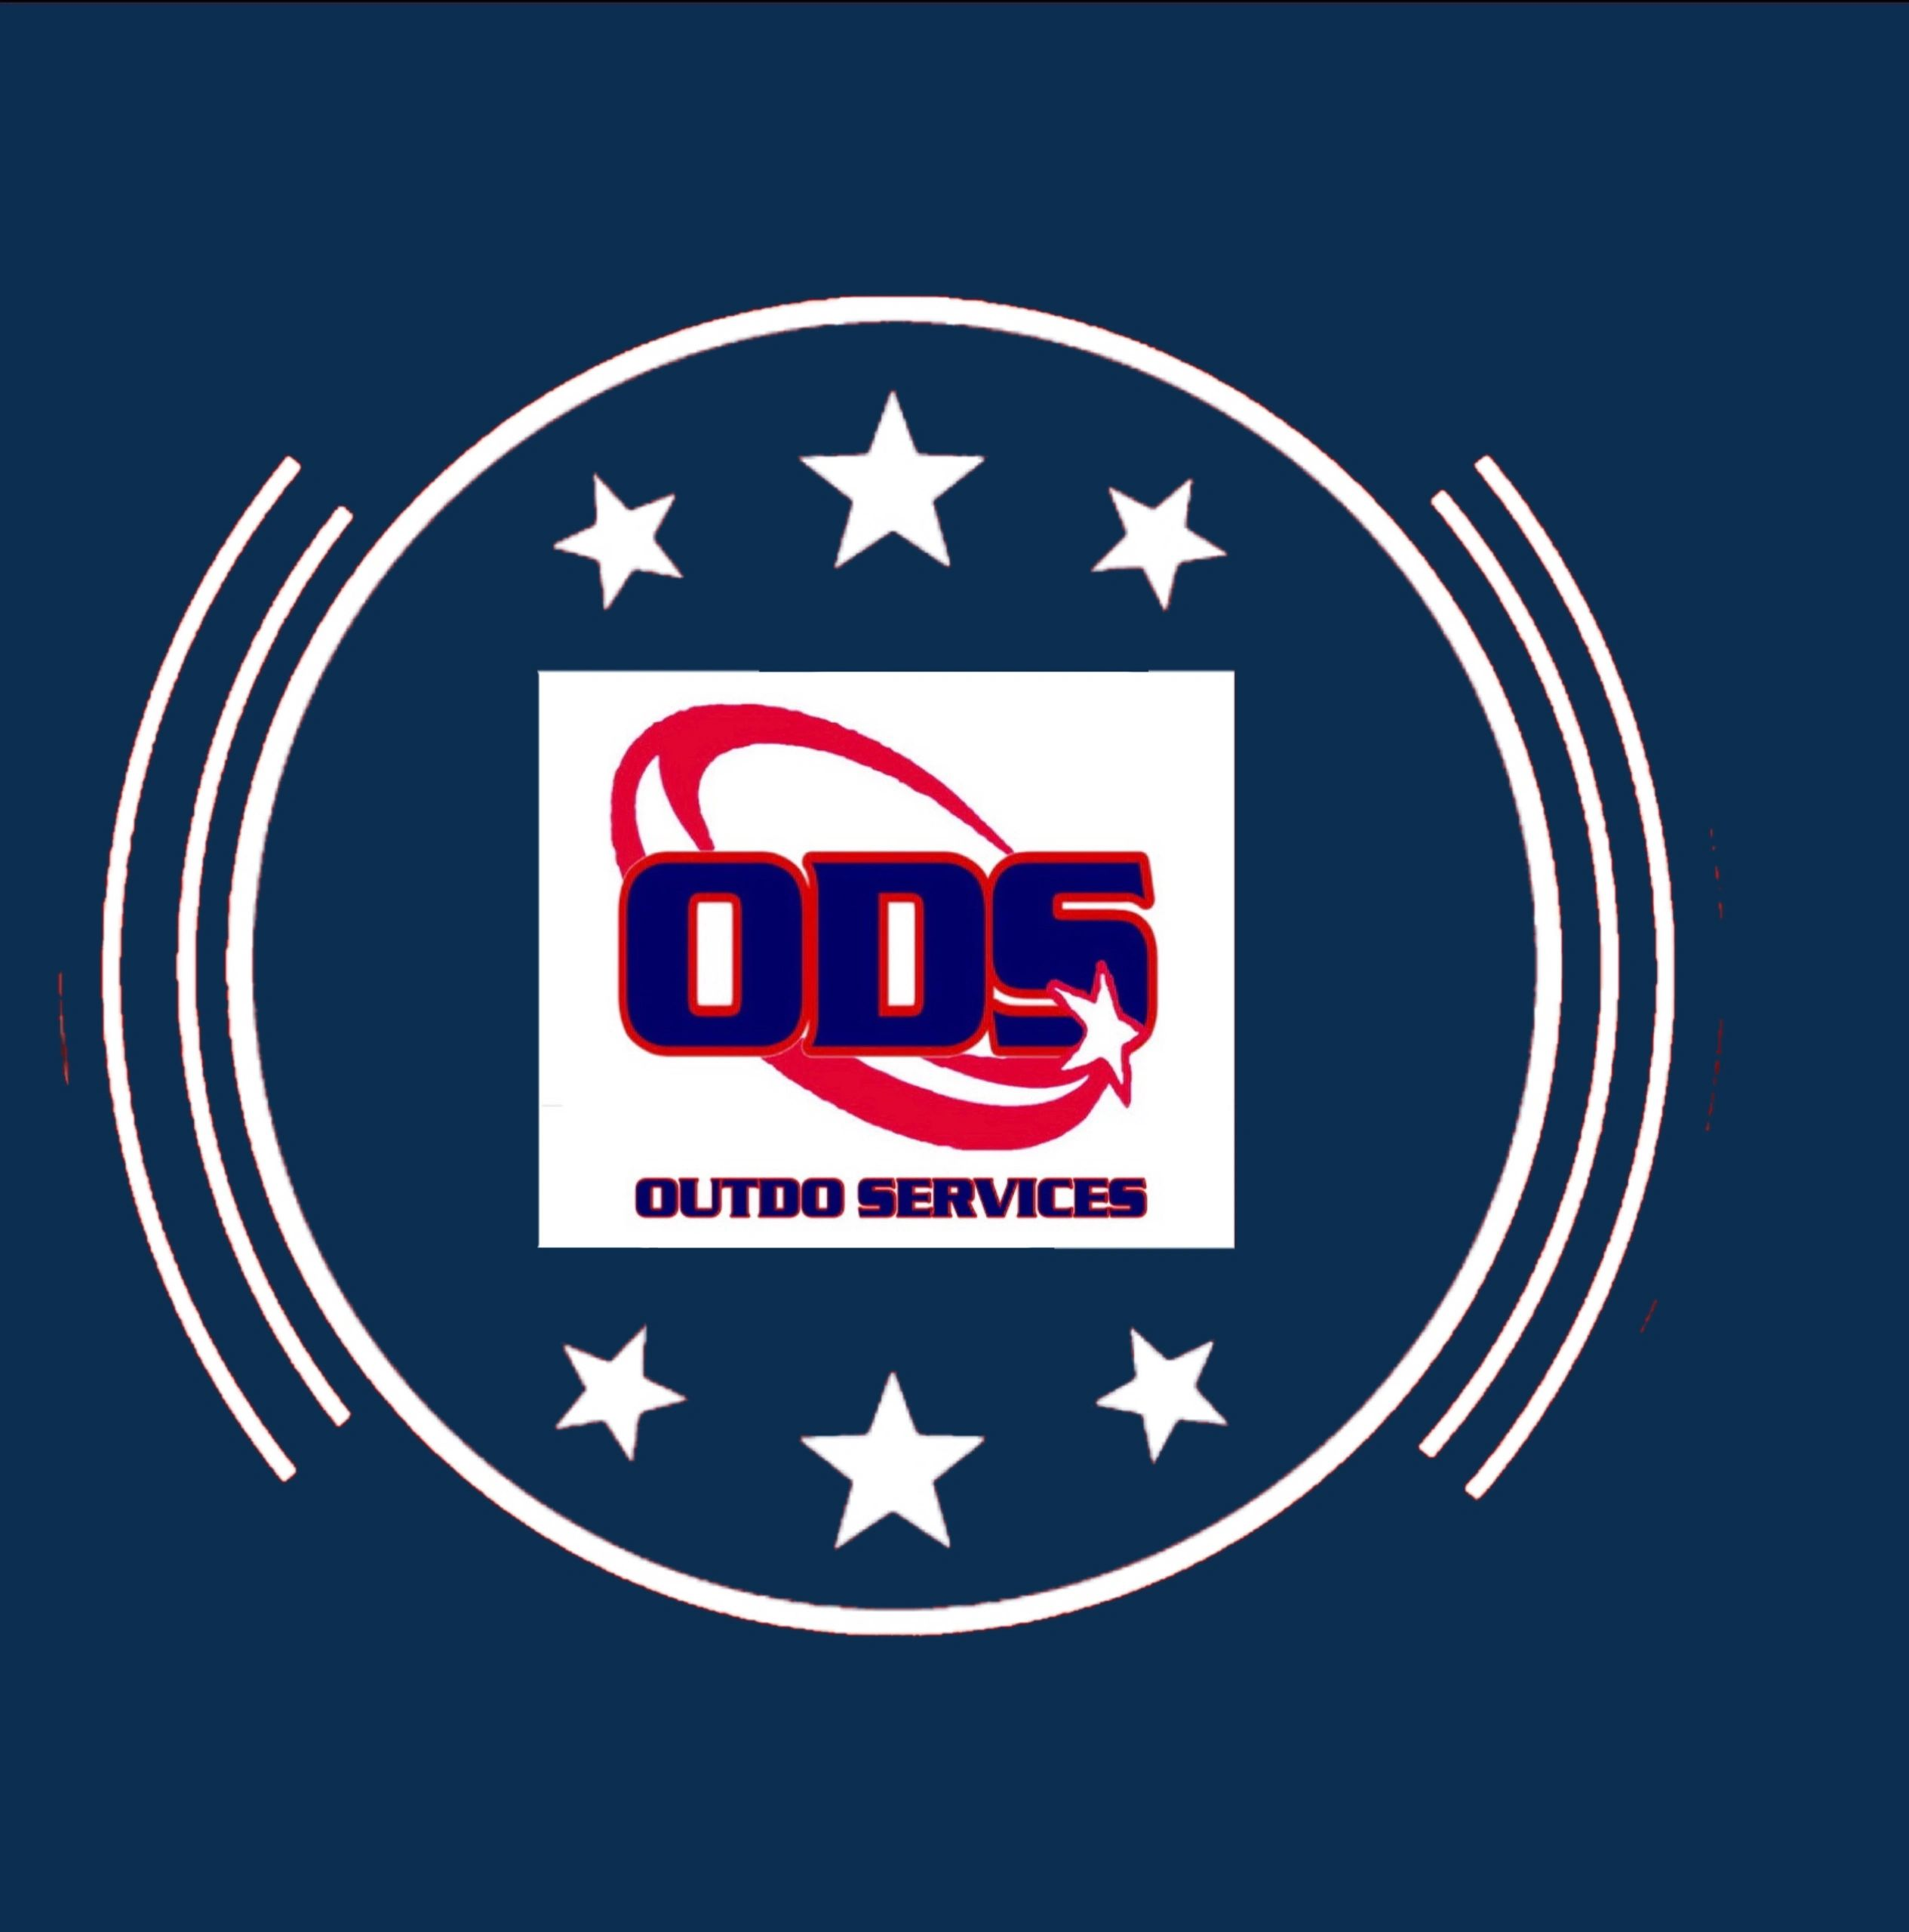 OutDo Services facilities management across the nation